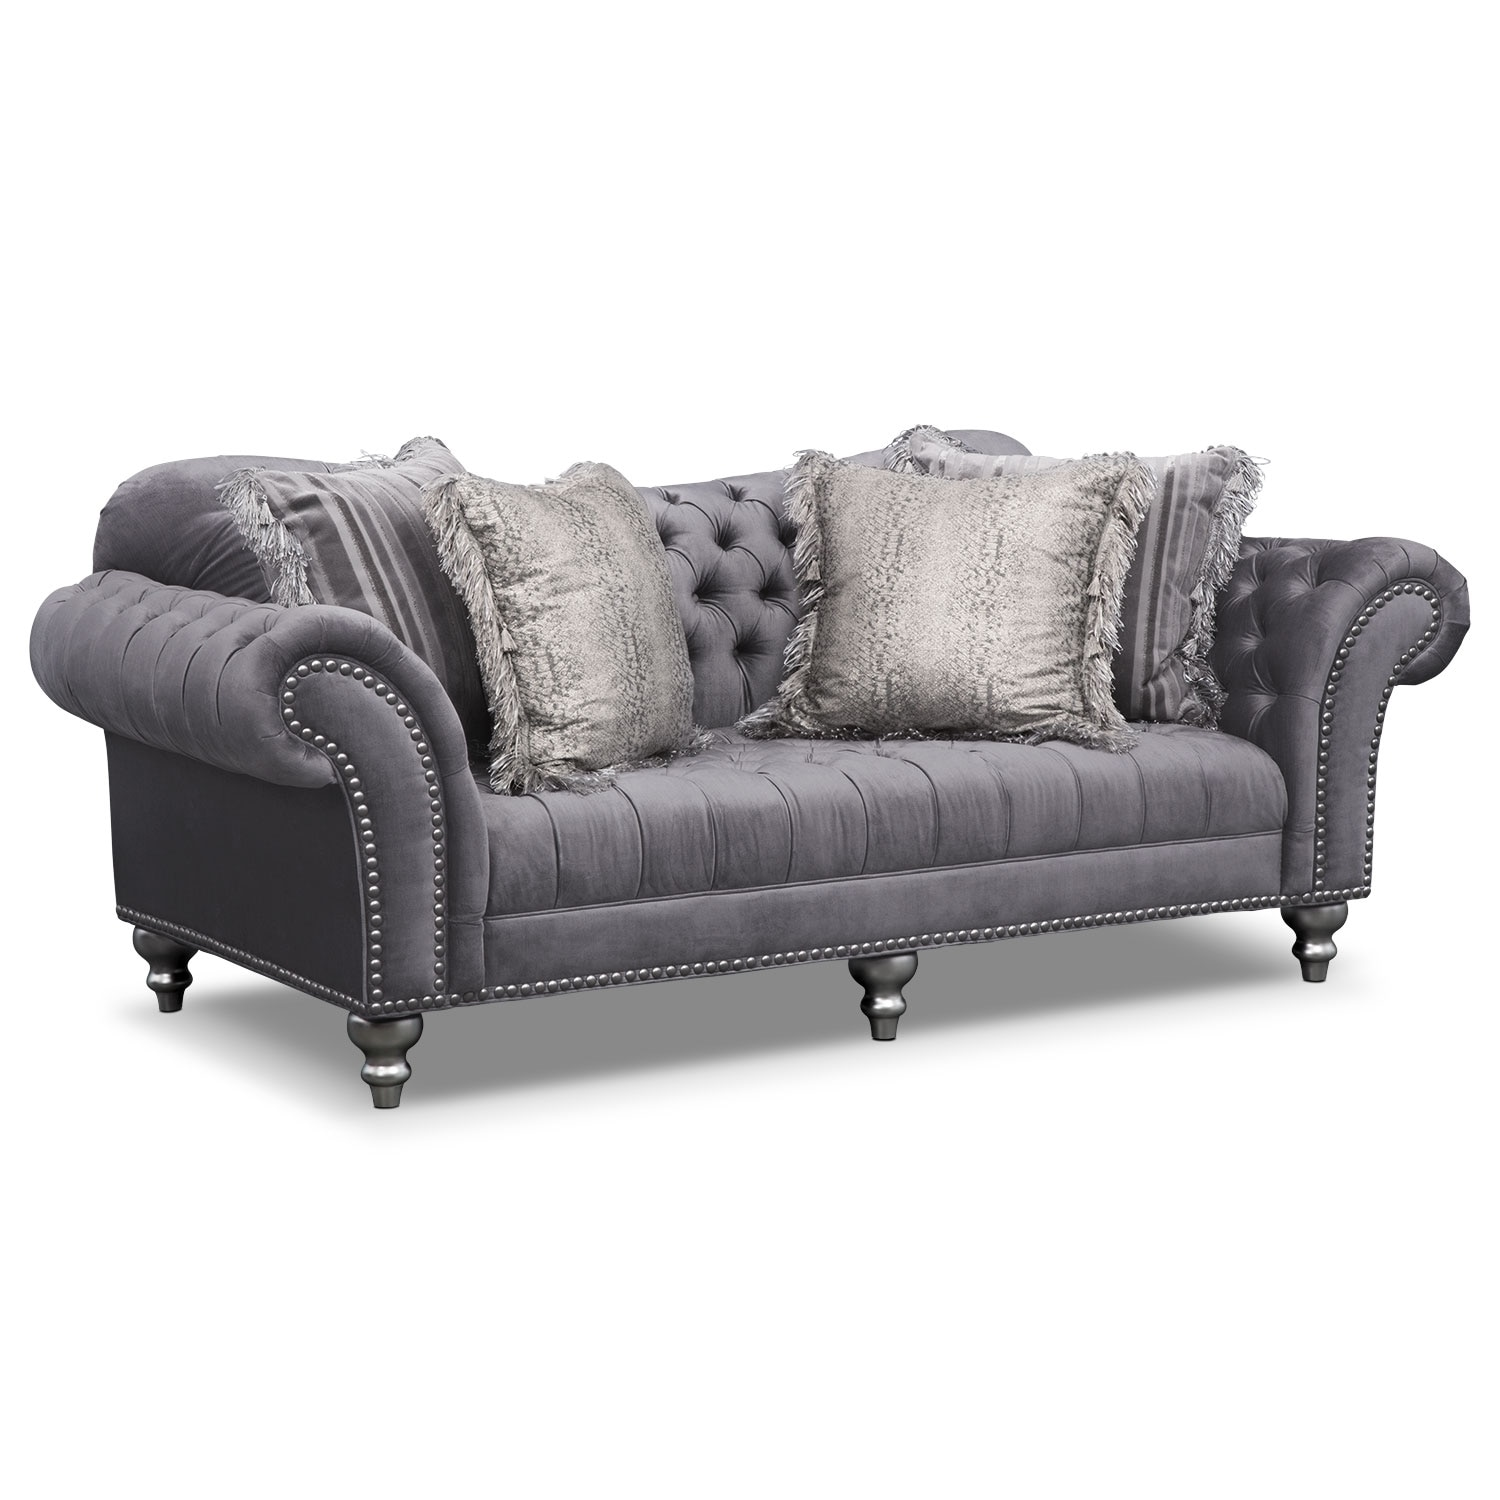 Brittney Sofa Gray Value City Furniture And Mattresses